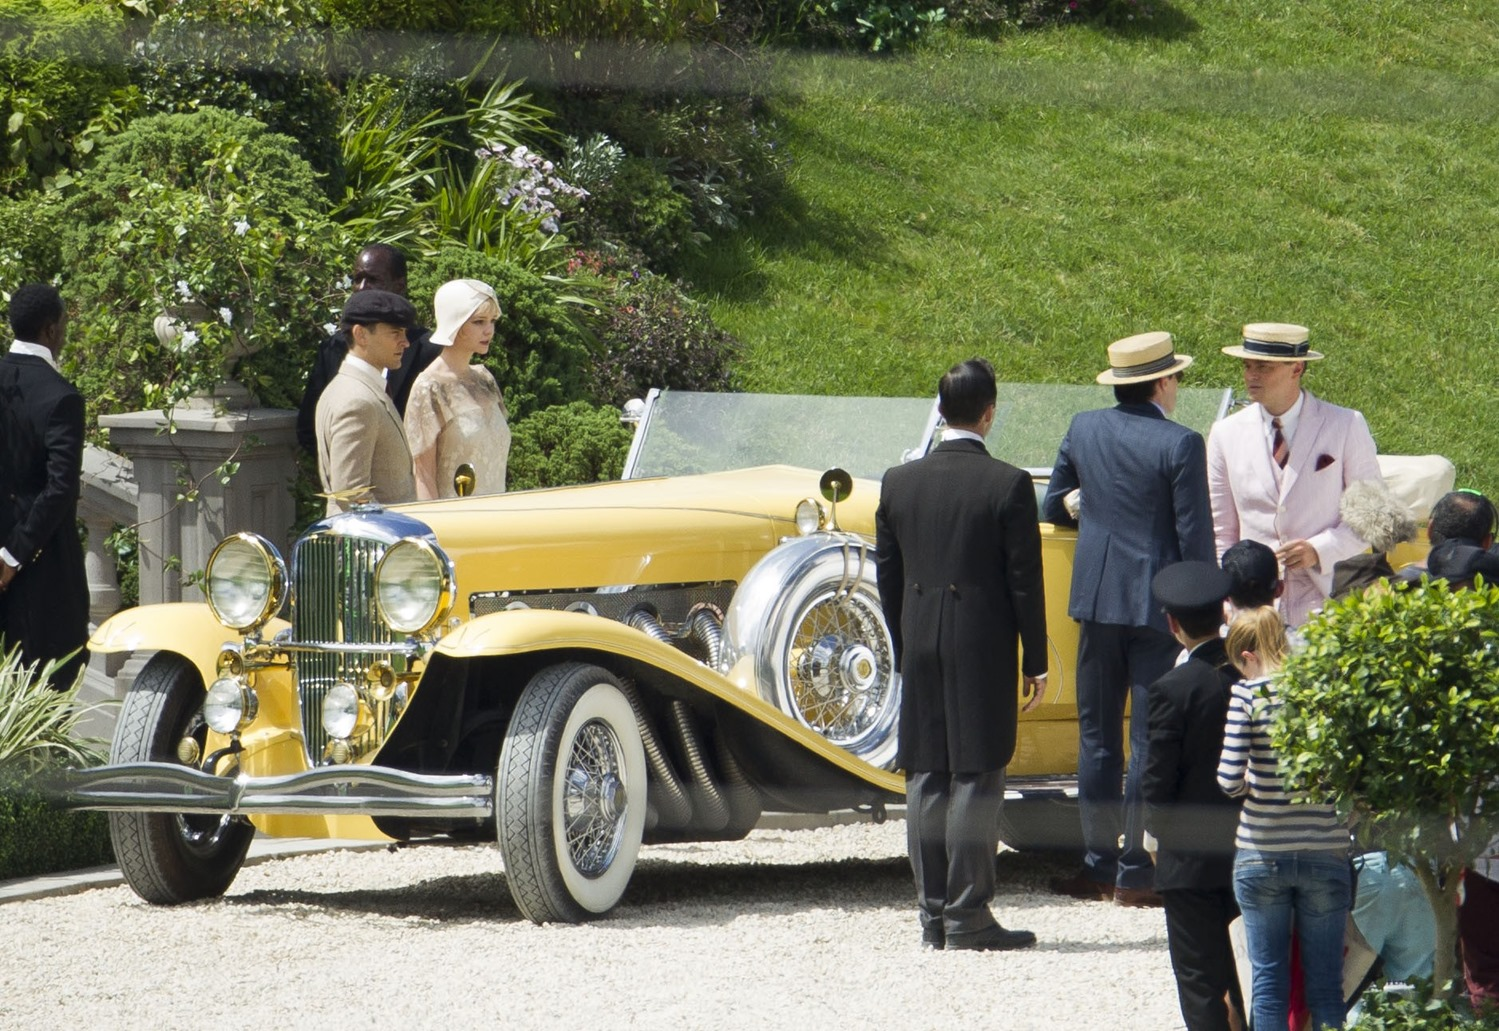 The-Great-Gatsby-On-Set-February-9th-2012